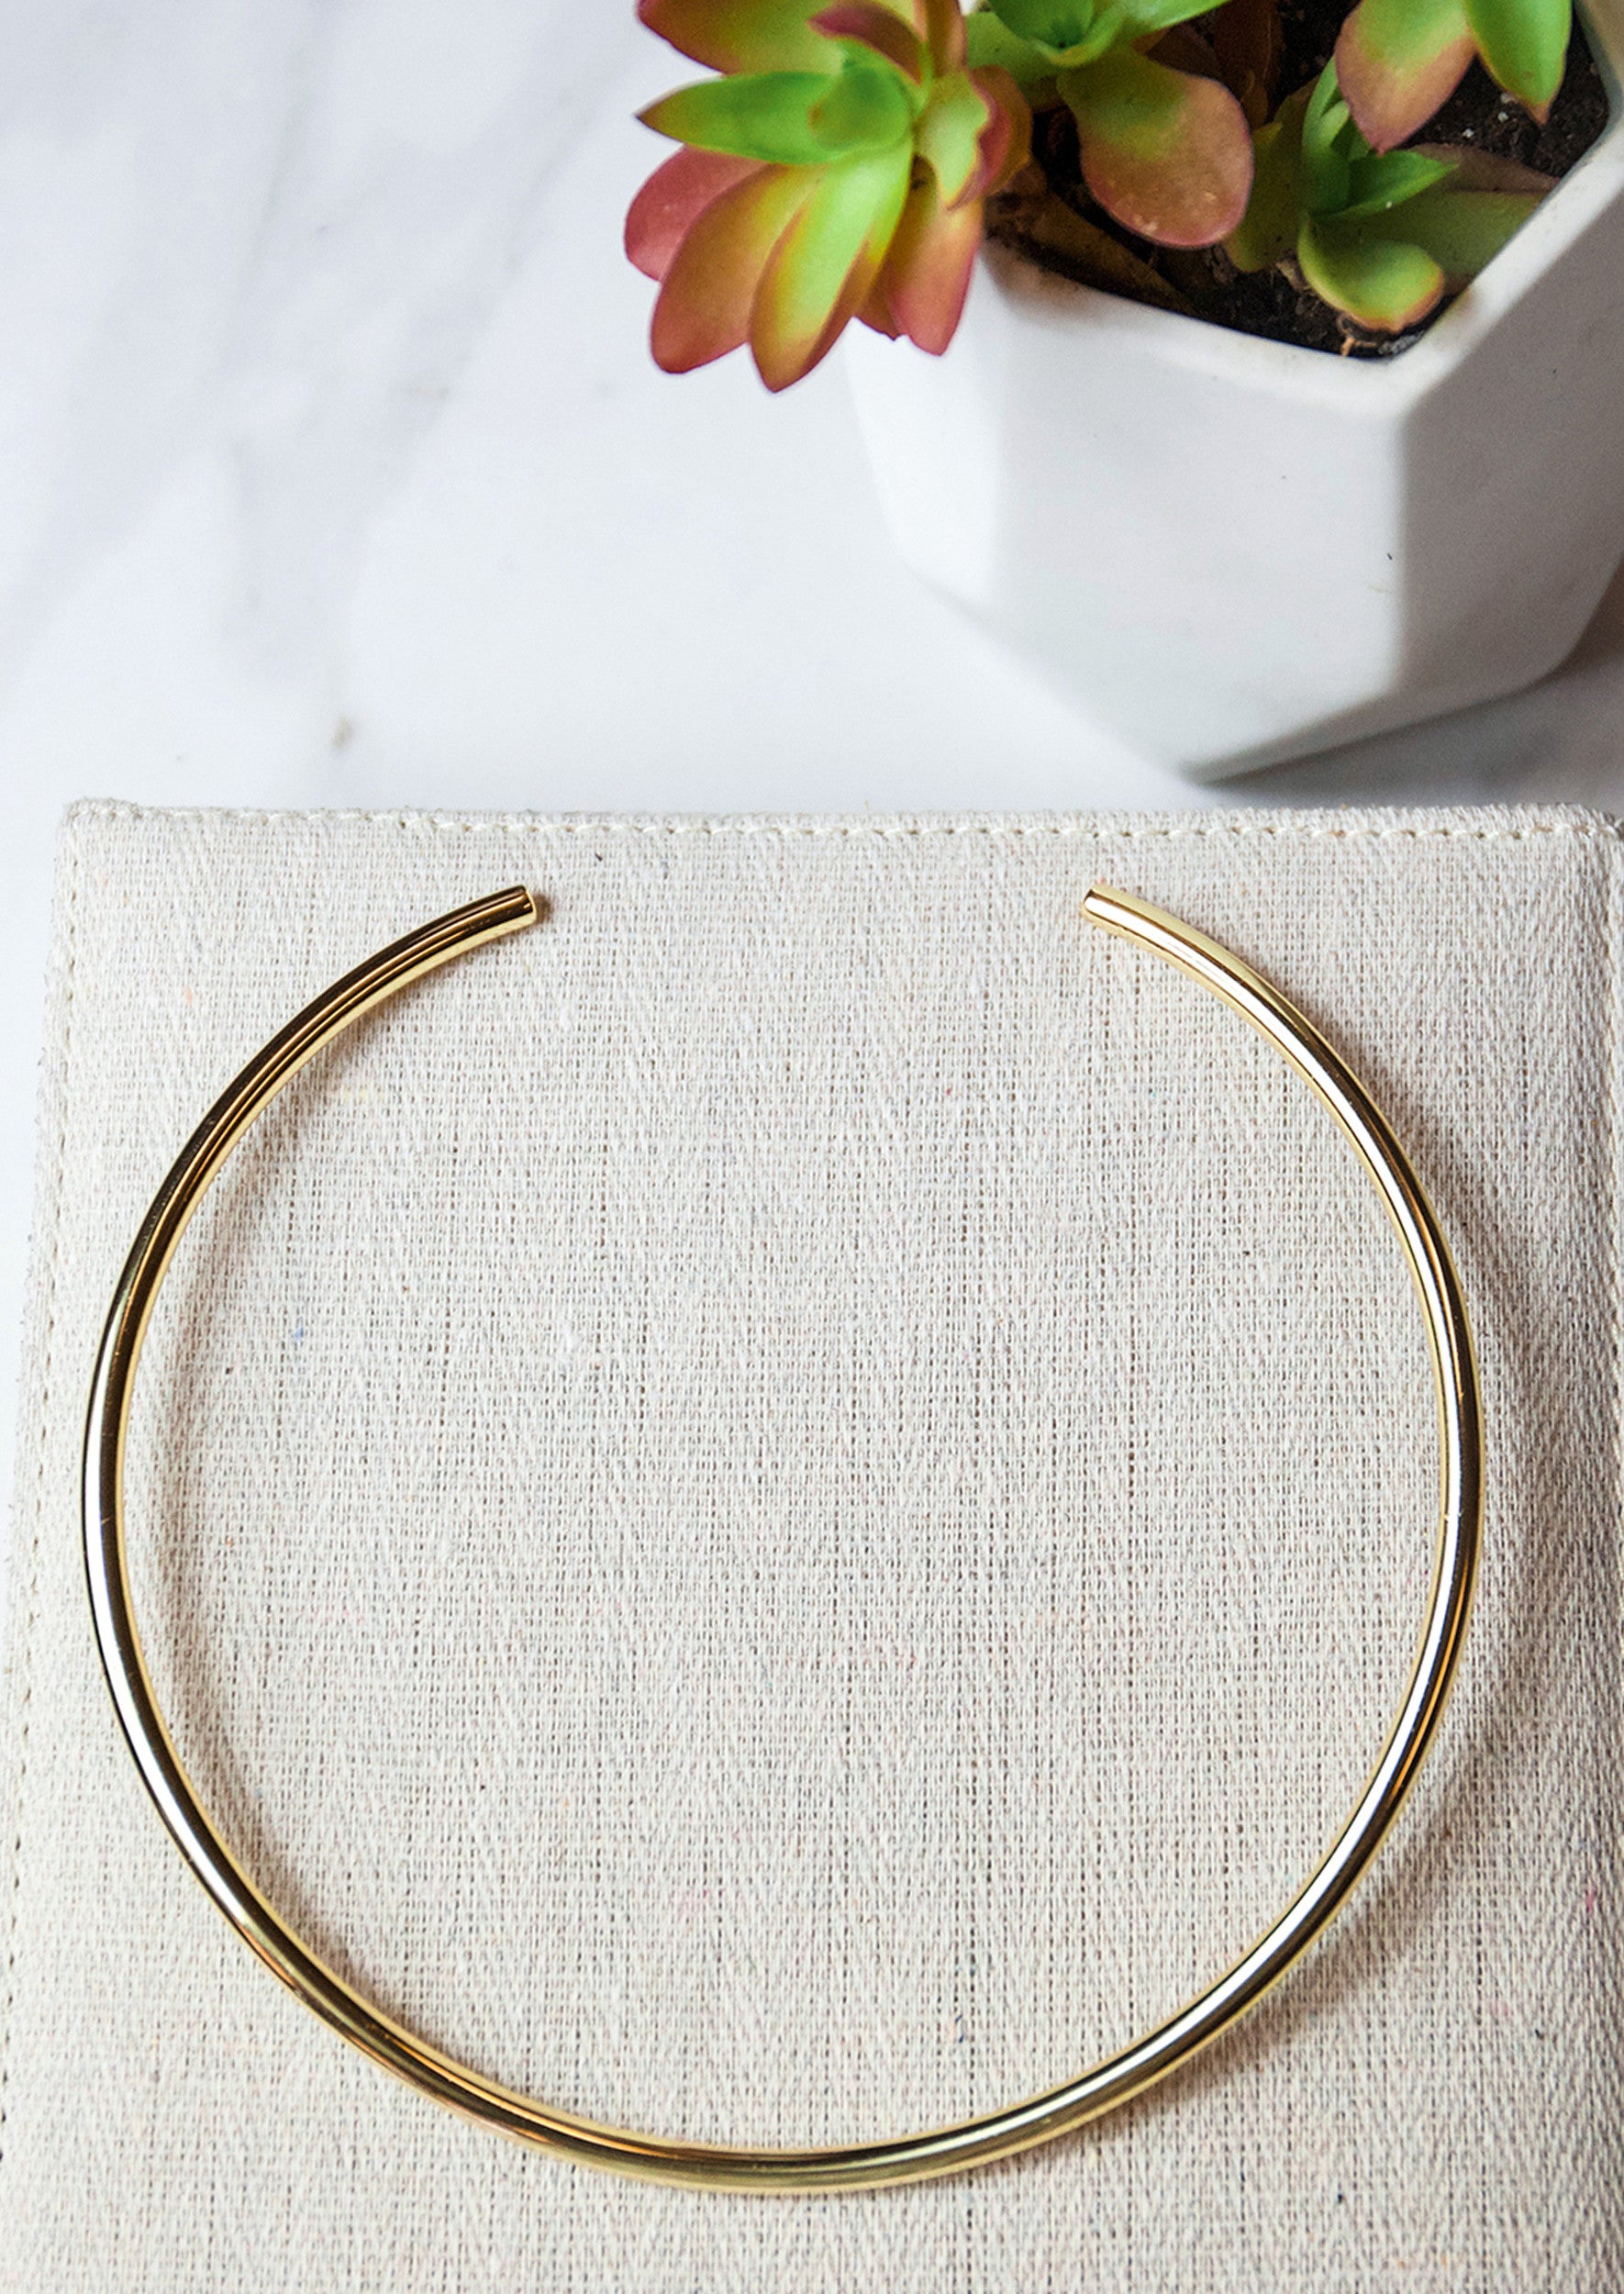 Jules Smith 14K Gold Plated Solid Bohemian Choker